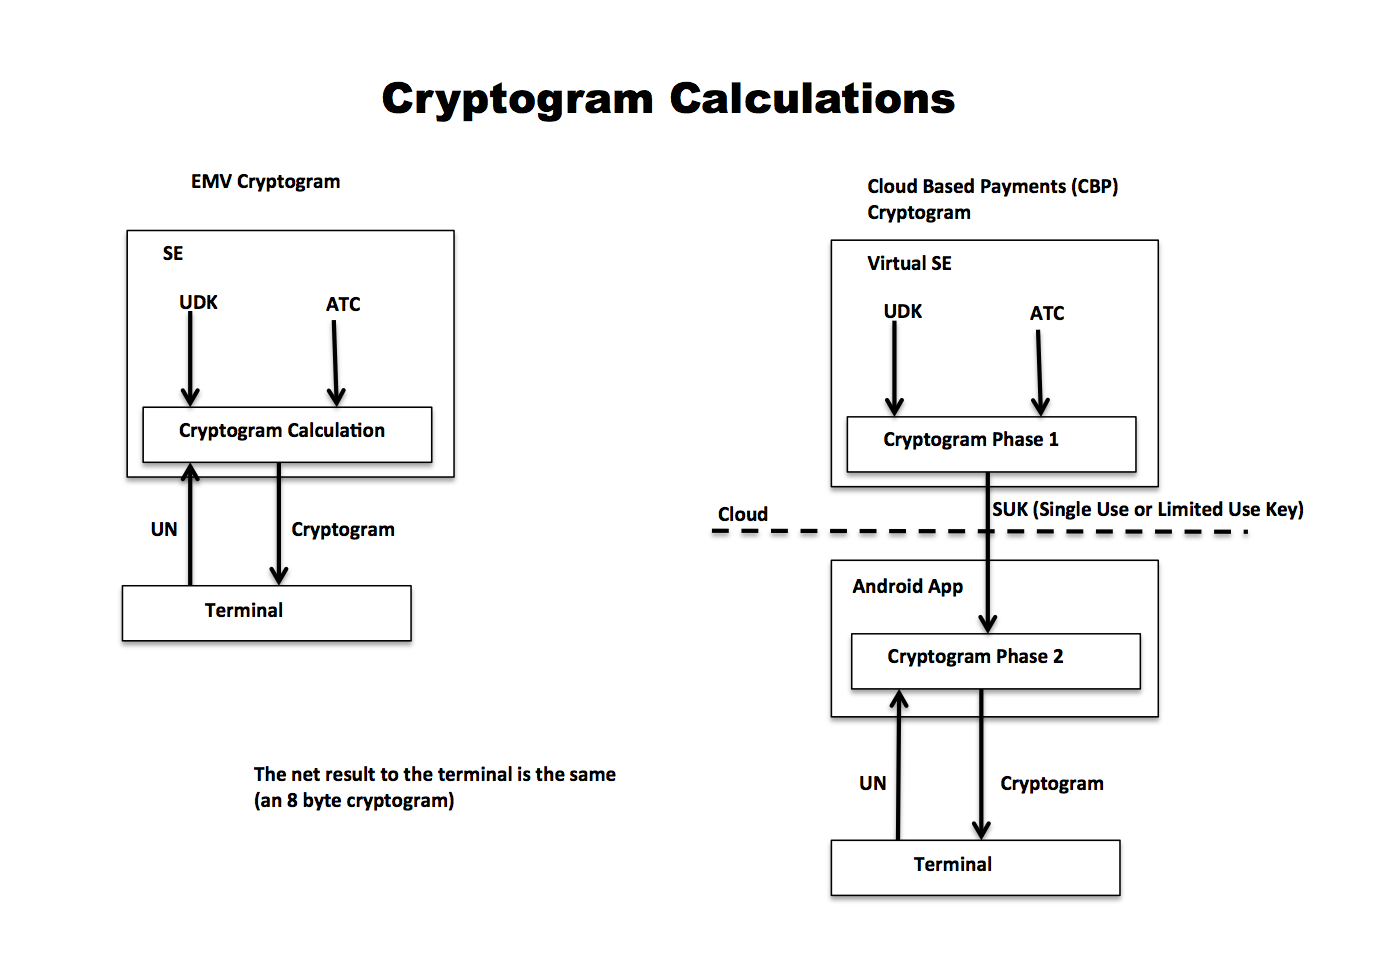 SimplyTapp: Cryptogram calculation clarity for CBP